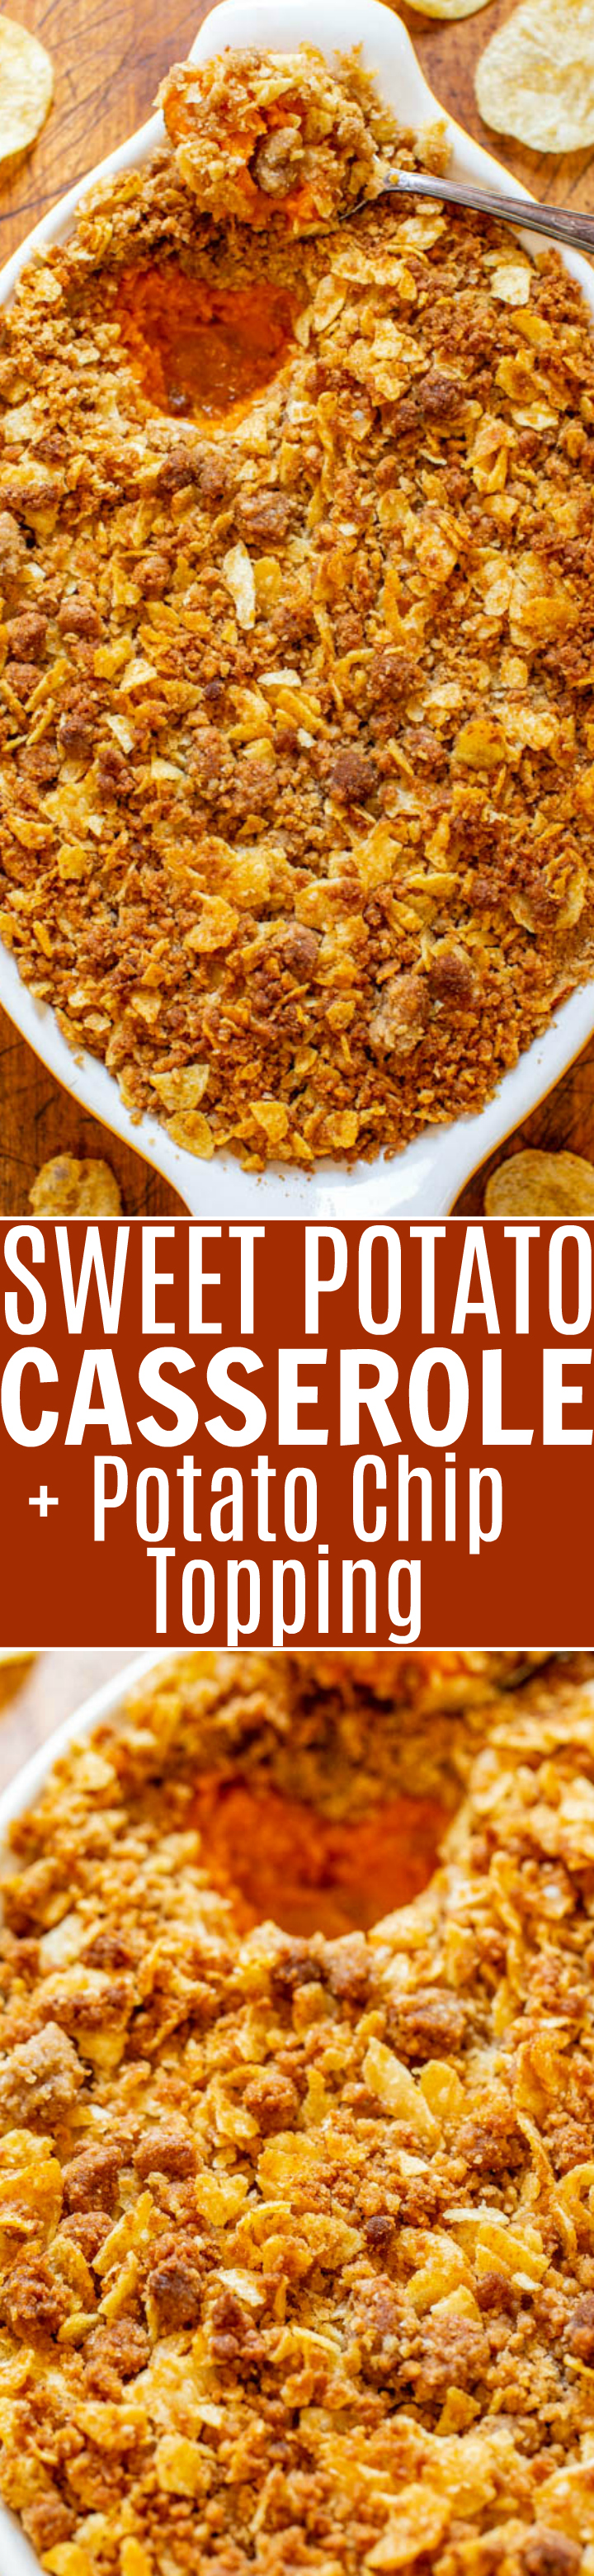 Sweet Potato Casserole With Potato Chip Topping - A fun and EASY twist on classic sweet potato casserole that uses potato chips in the topping for a SALTY-SWEET flavor the whole family will love!! Great for Thanksgiving and Christmas celebrations!!